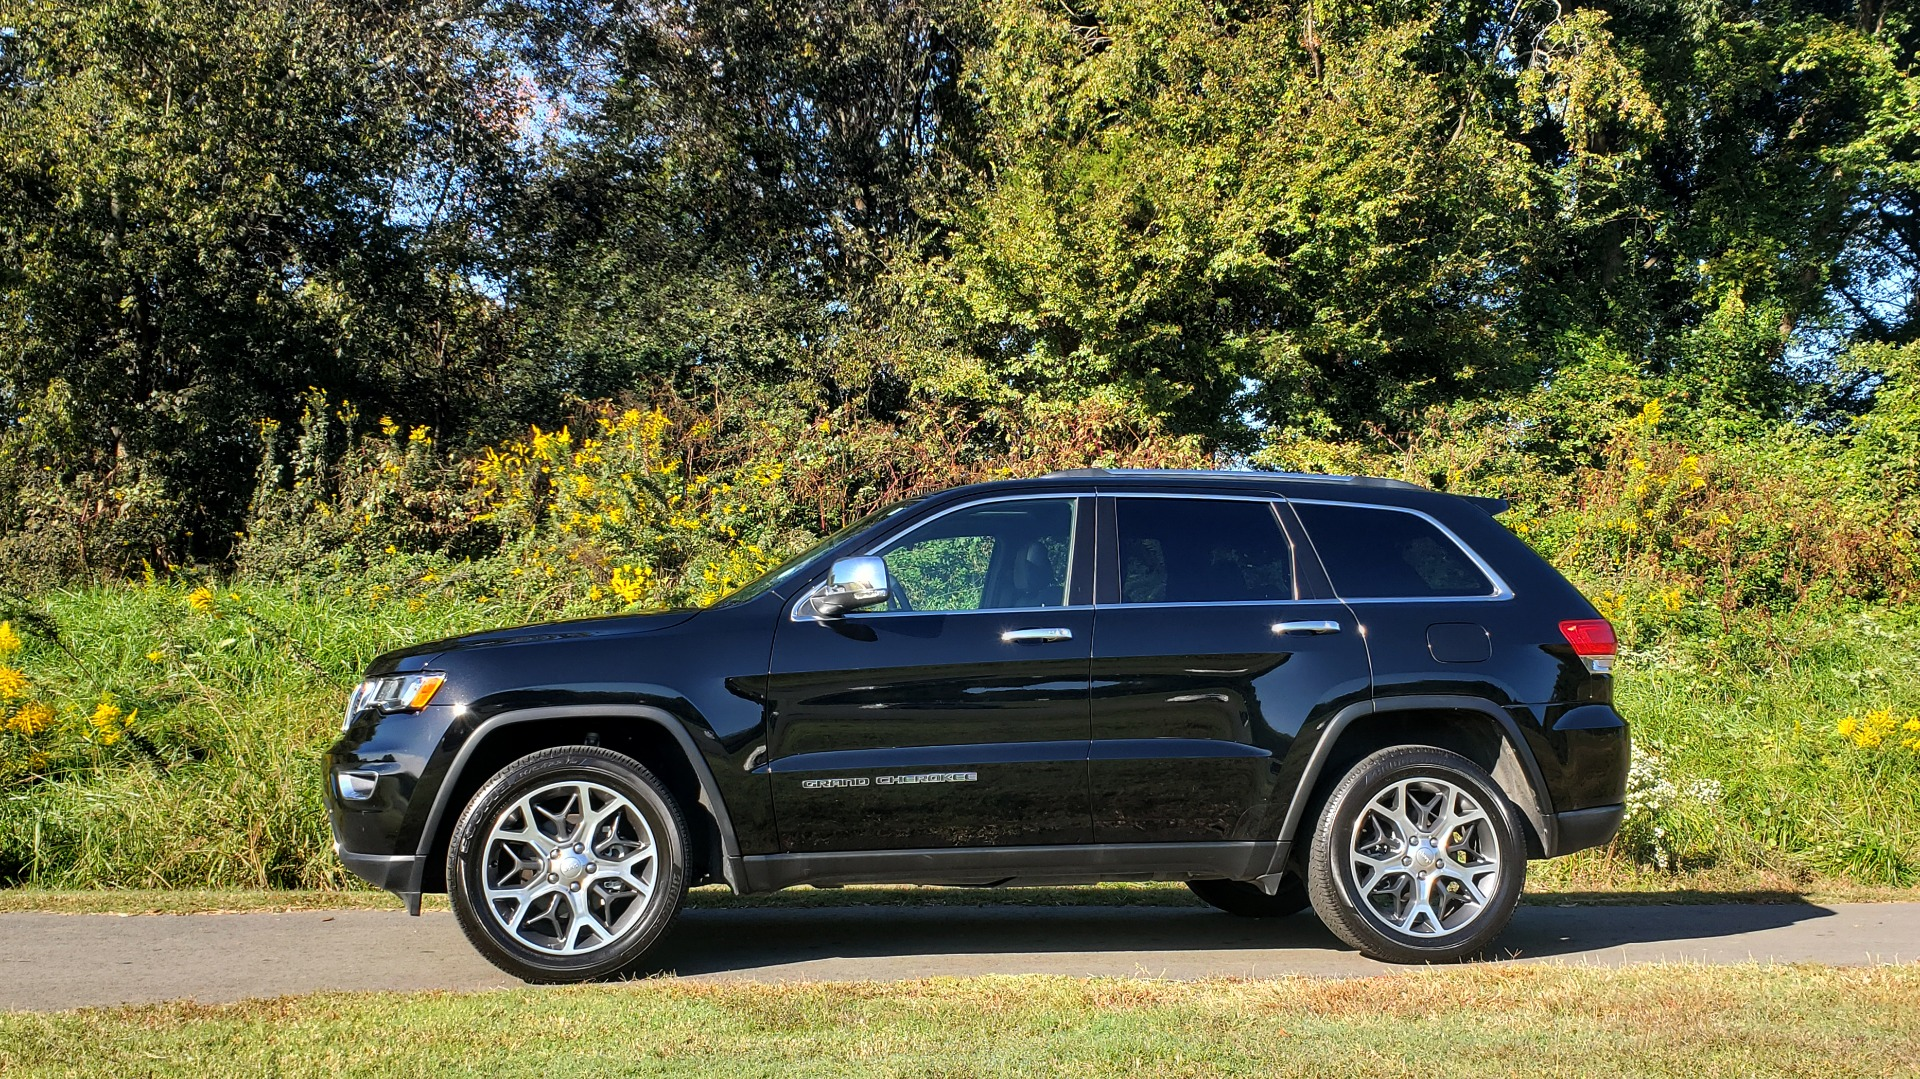 Used 2019 Jeep GRAND CHEROKEE LIMITED 4X4 / NAV / SUNROOF / BLIND SPOT MONITOR / REARVIEW for sale Sold at Formula Imports in Charlotte NC 28227 7